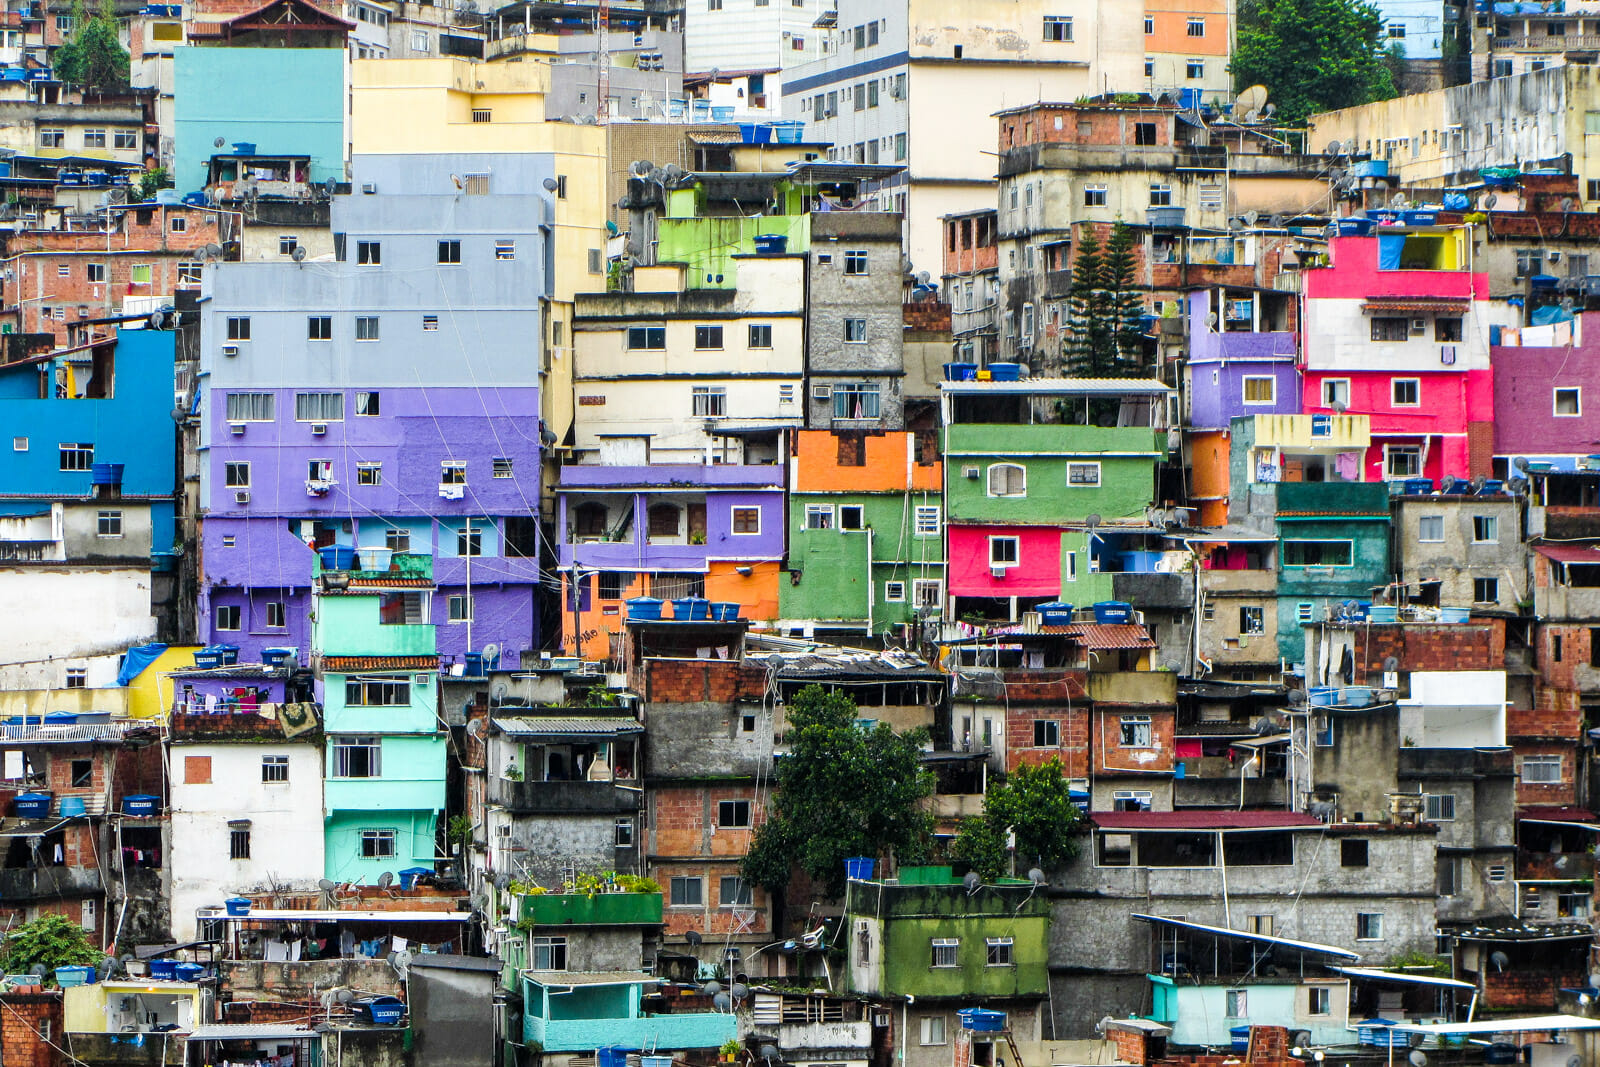 The colorful Rocinha favela houses of Rio